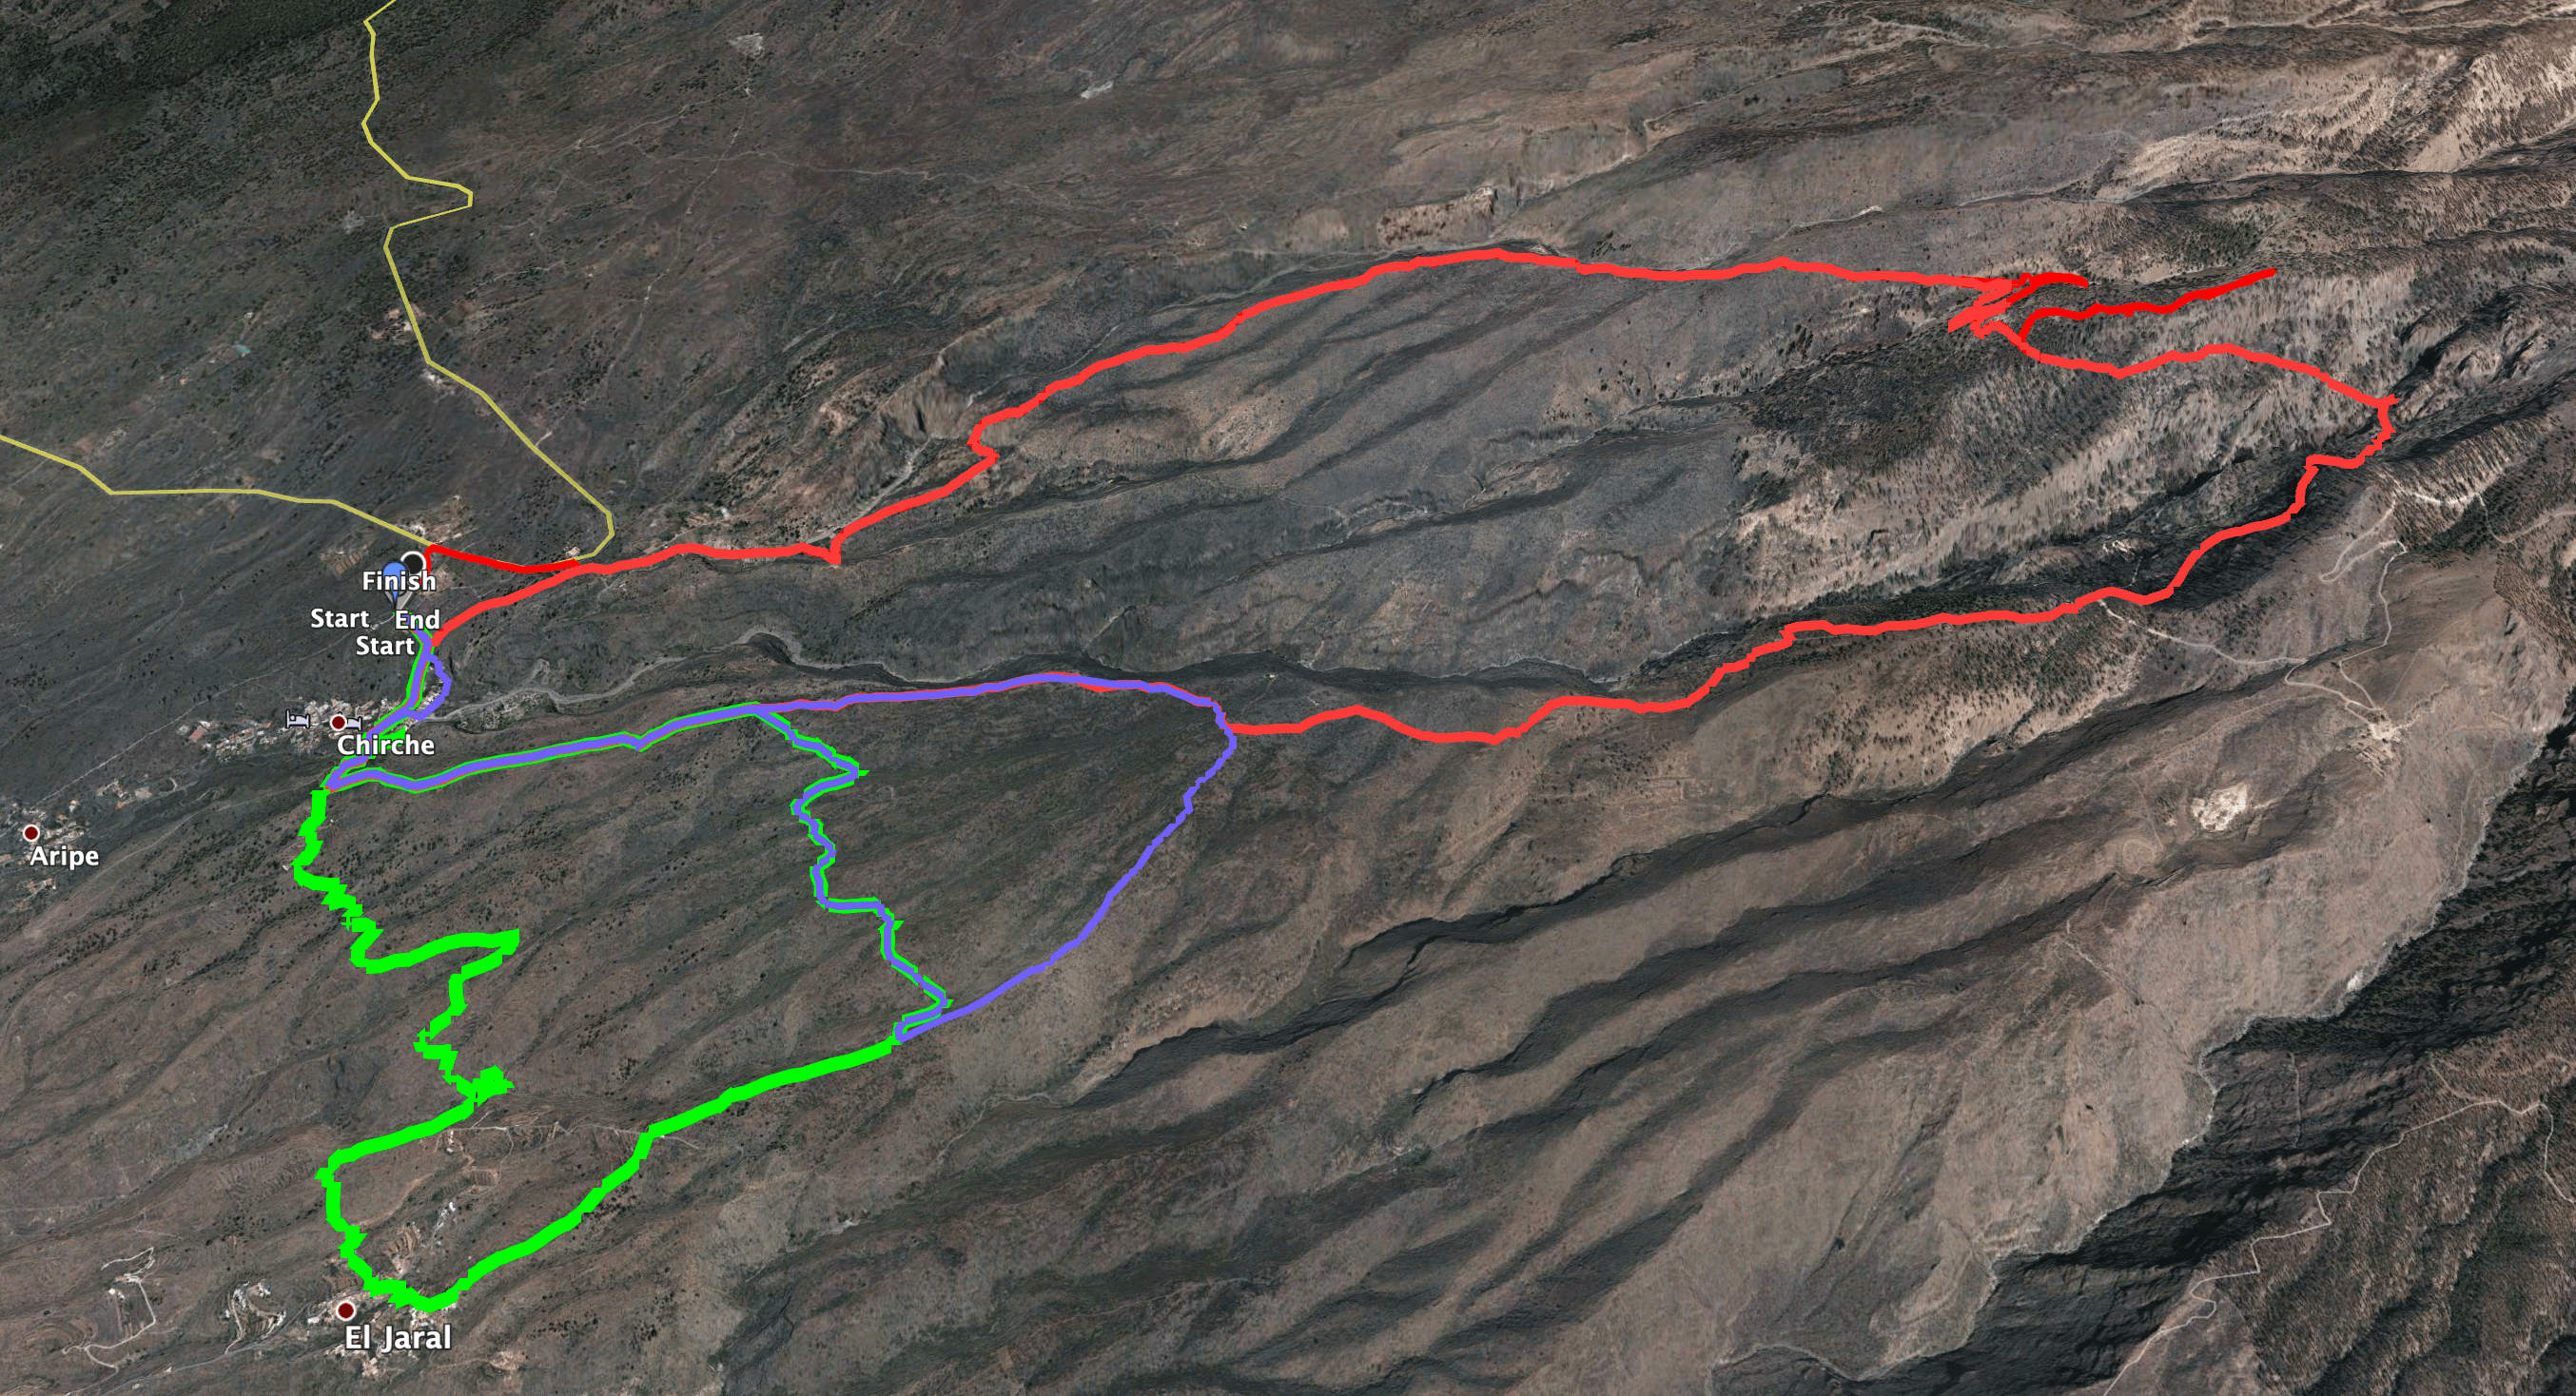 Track of the hike Chirche - Barranco de Tagara and small round trips (extensions) via El Jaral